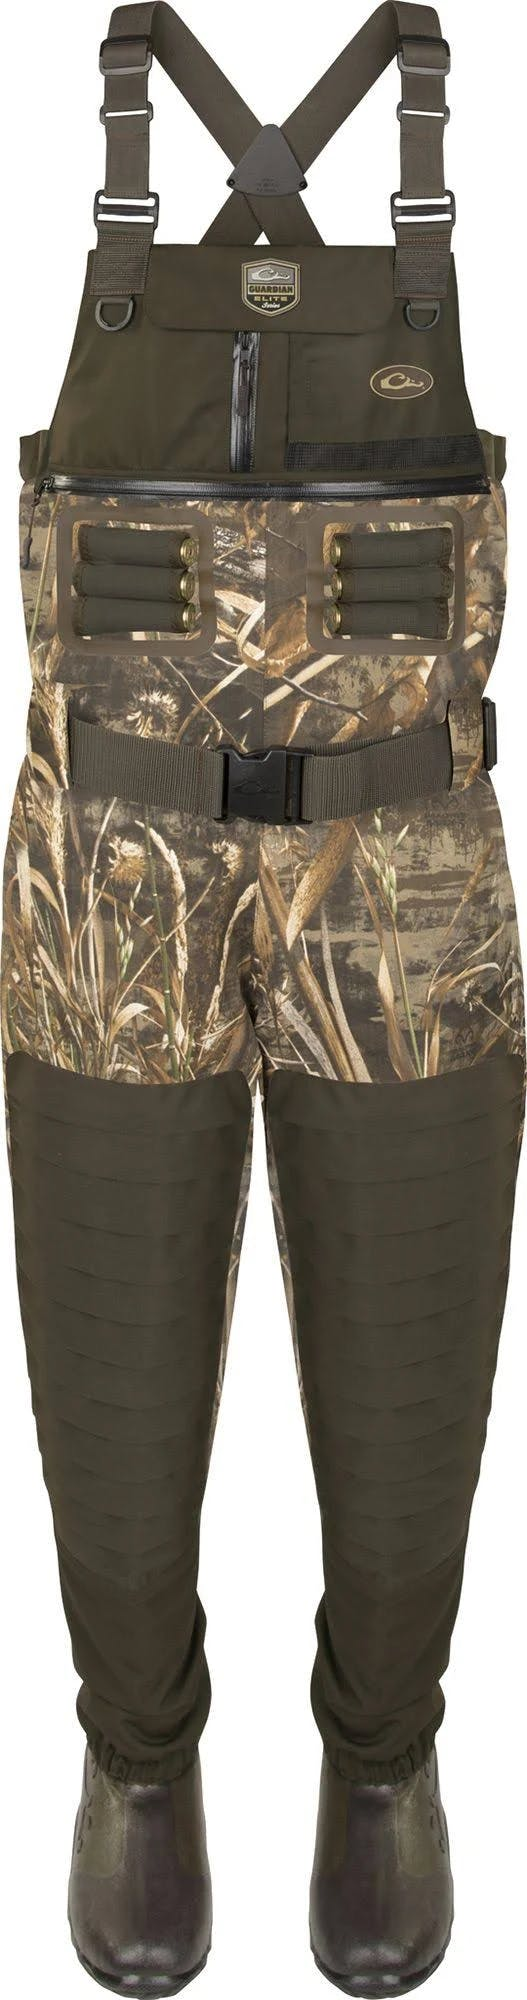 Guardian Men's Elite 6-Layer 4-in-1 Chest Wader, 8 - Waders at Academy Sports